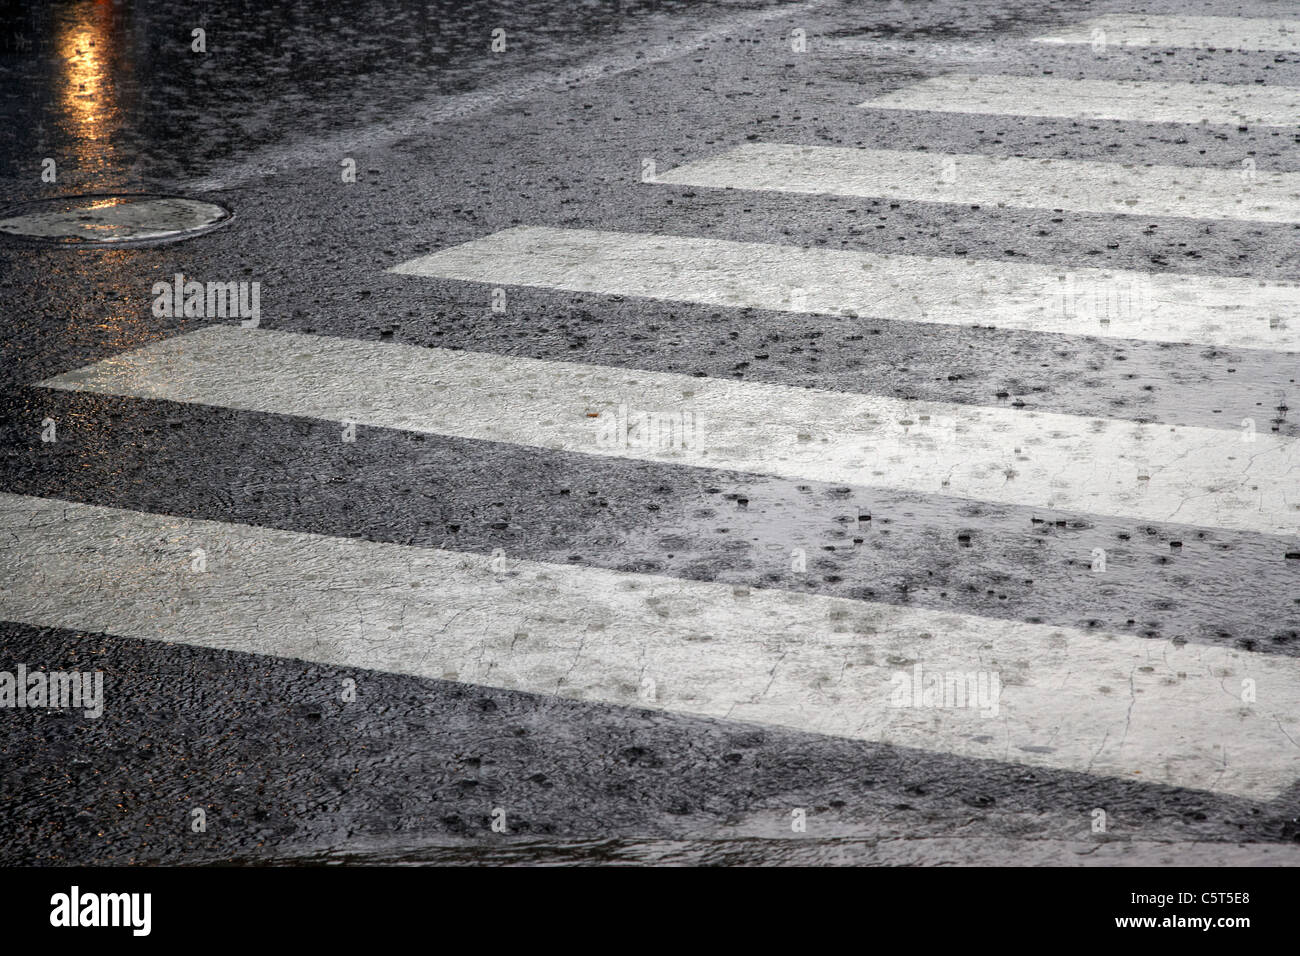 crosswalk in heavy rain downtown broadway Nashville Tennessee USA - Stock Image